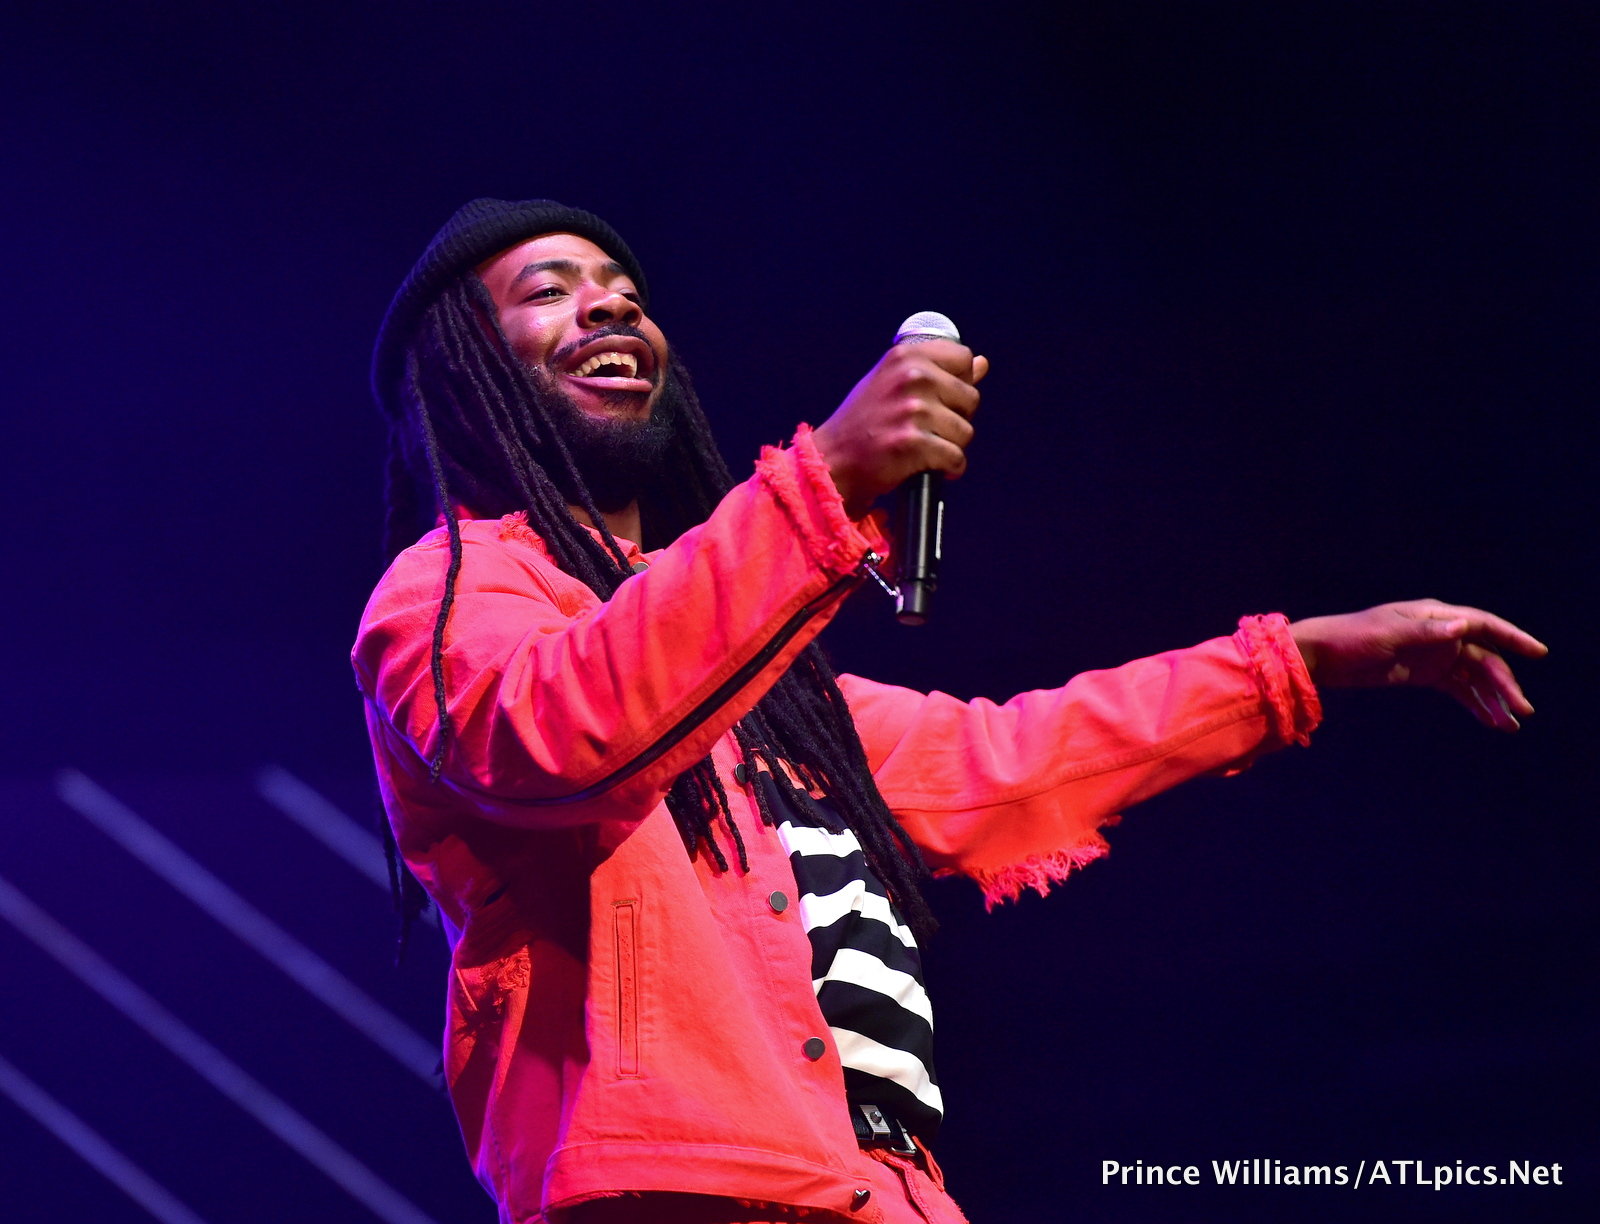 Dram at #BirthdayBashATL2017